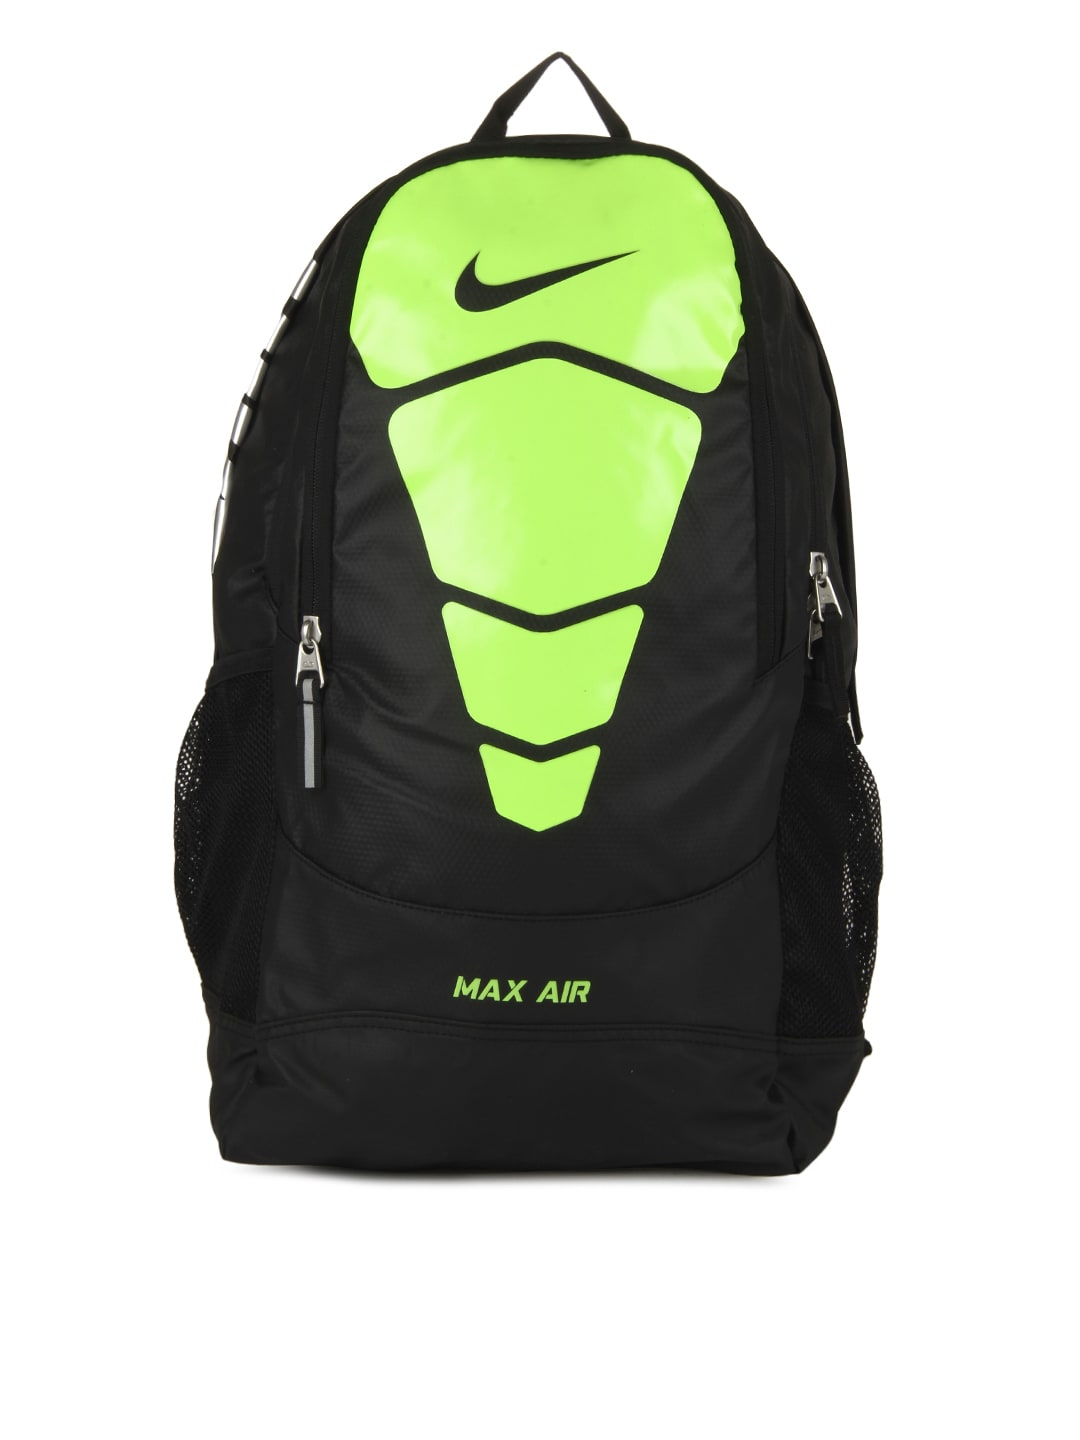 a5f3d064277 Nike ba4729-058 Unisex Black Training Max Air Vapor Superfly Backpack- Price  in India